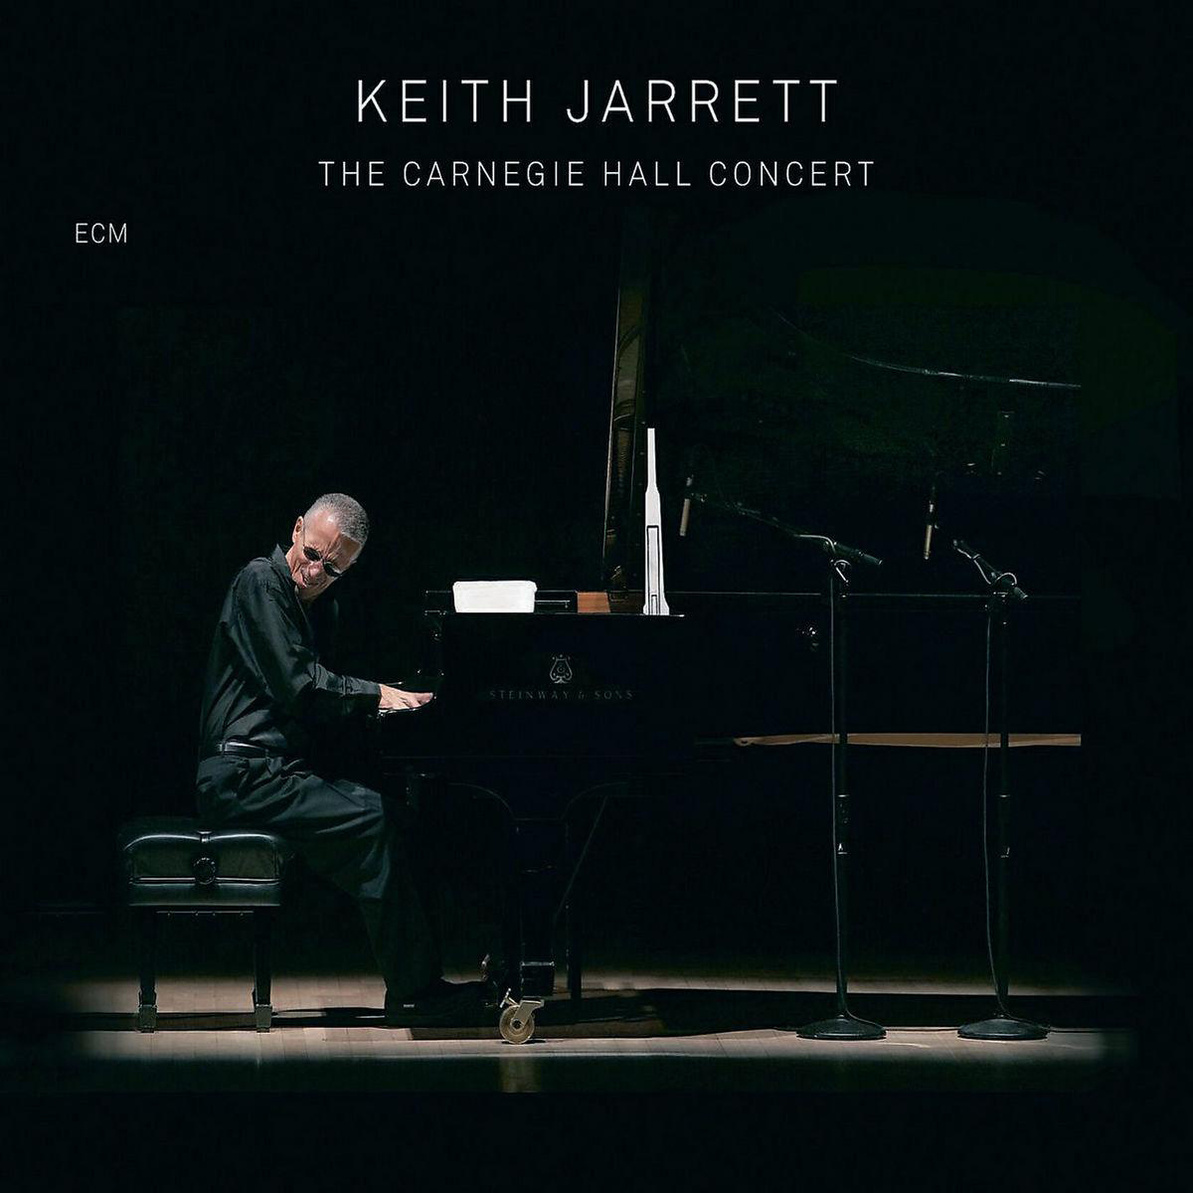 Keith Jarrett Solo Improvisations